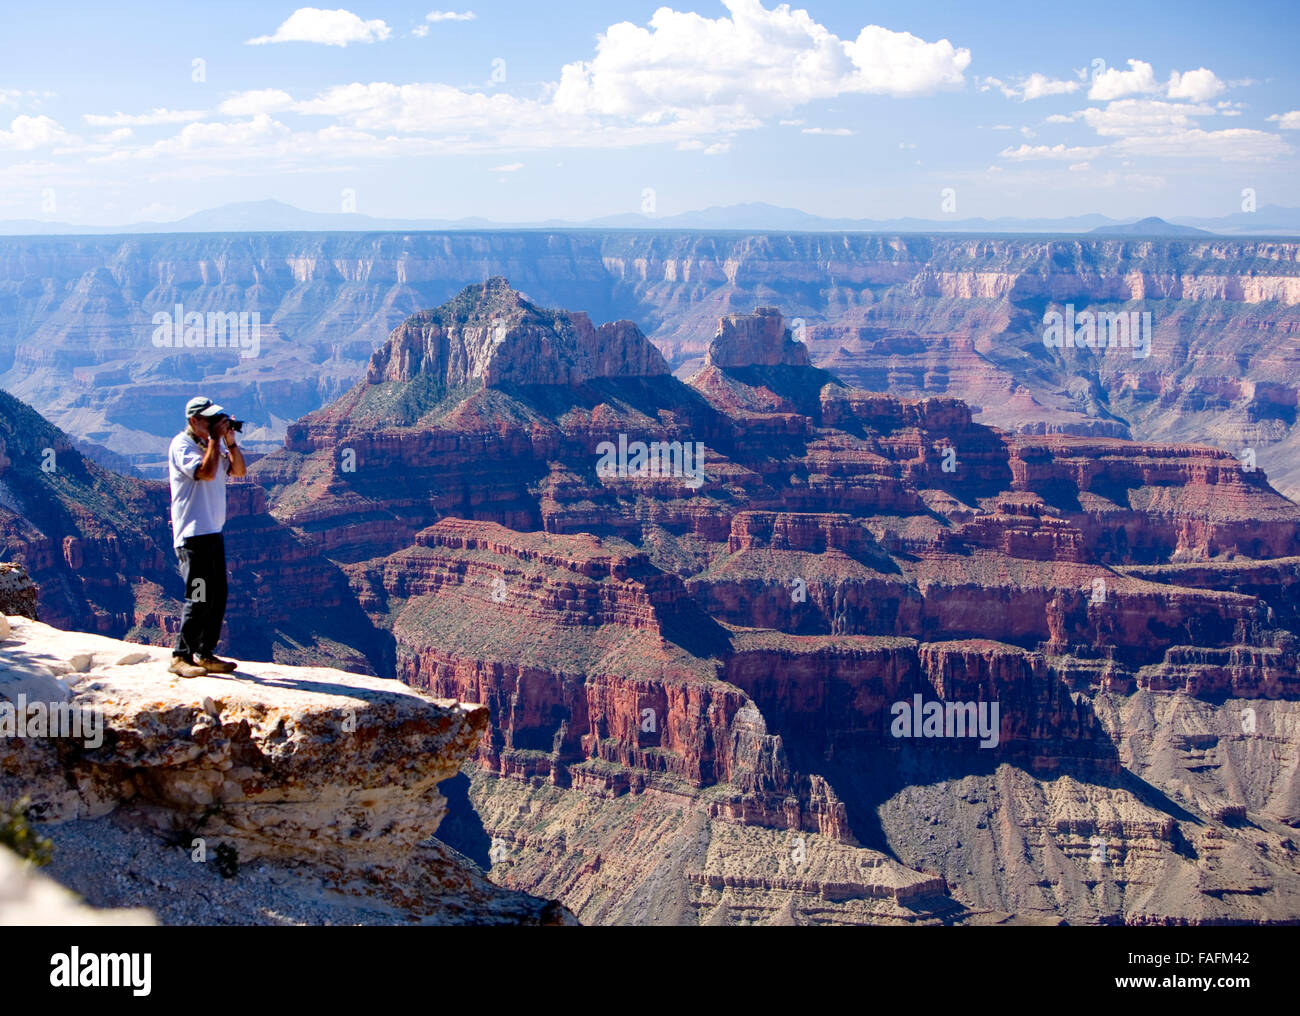 Man looking out over the Grand Canyon with binoculars, Arizona - Stock Image